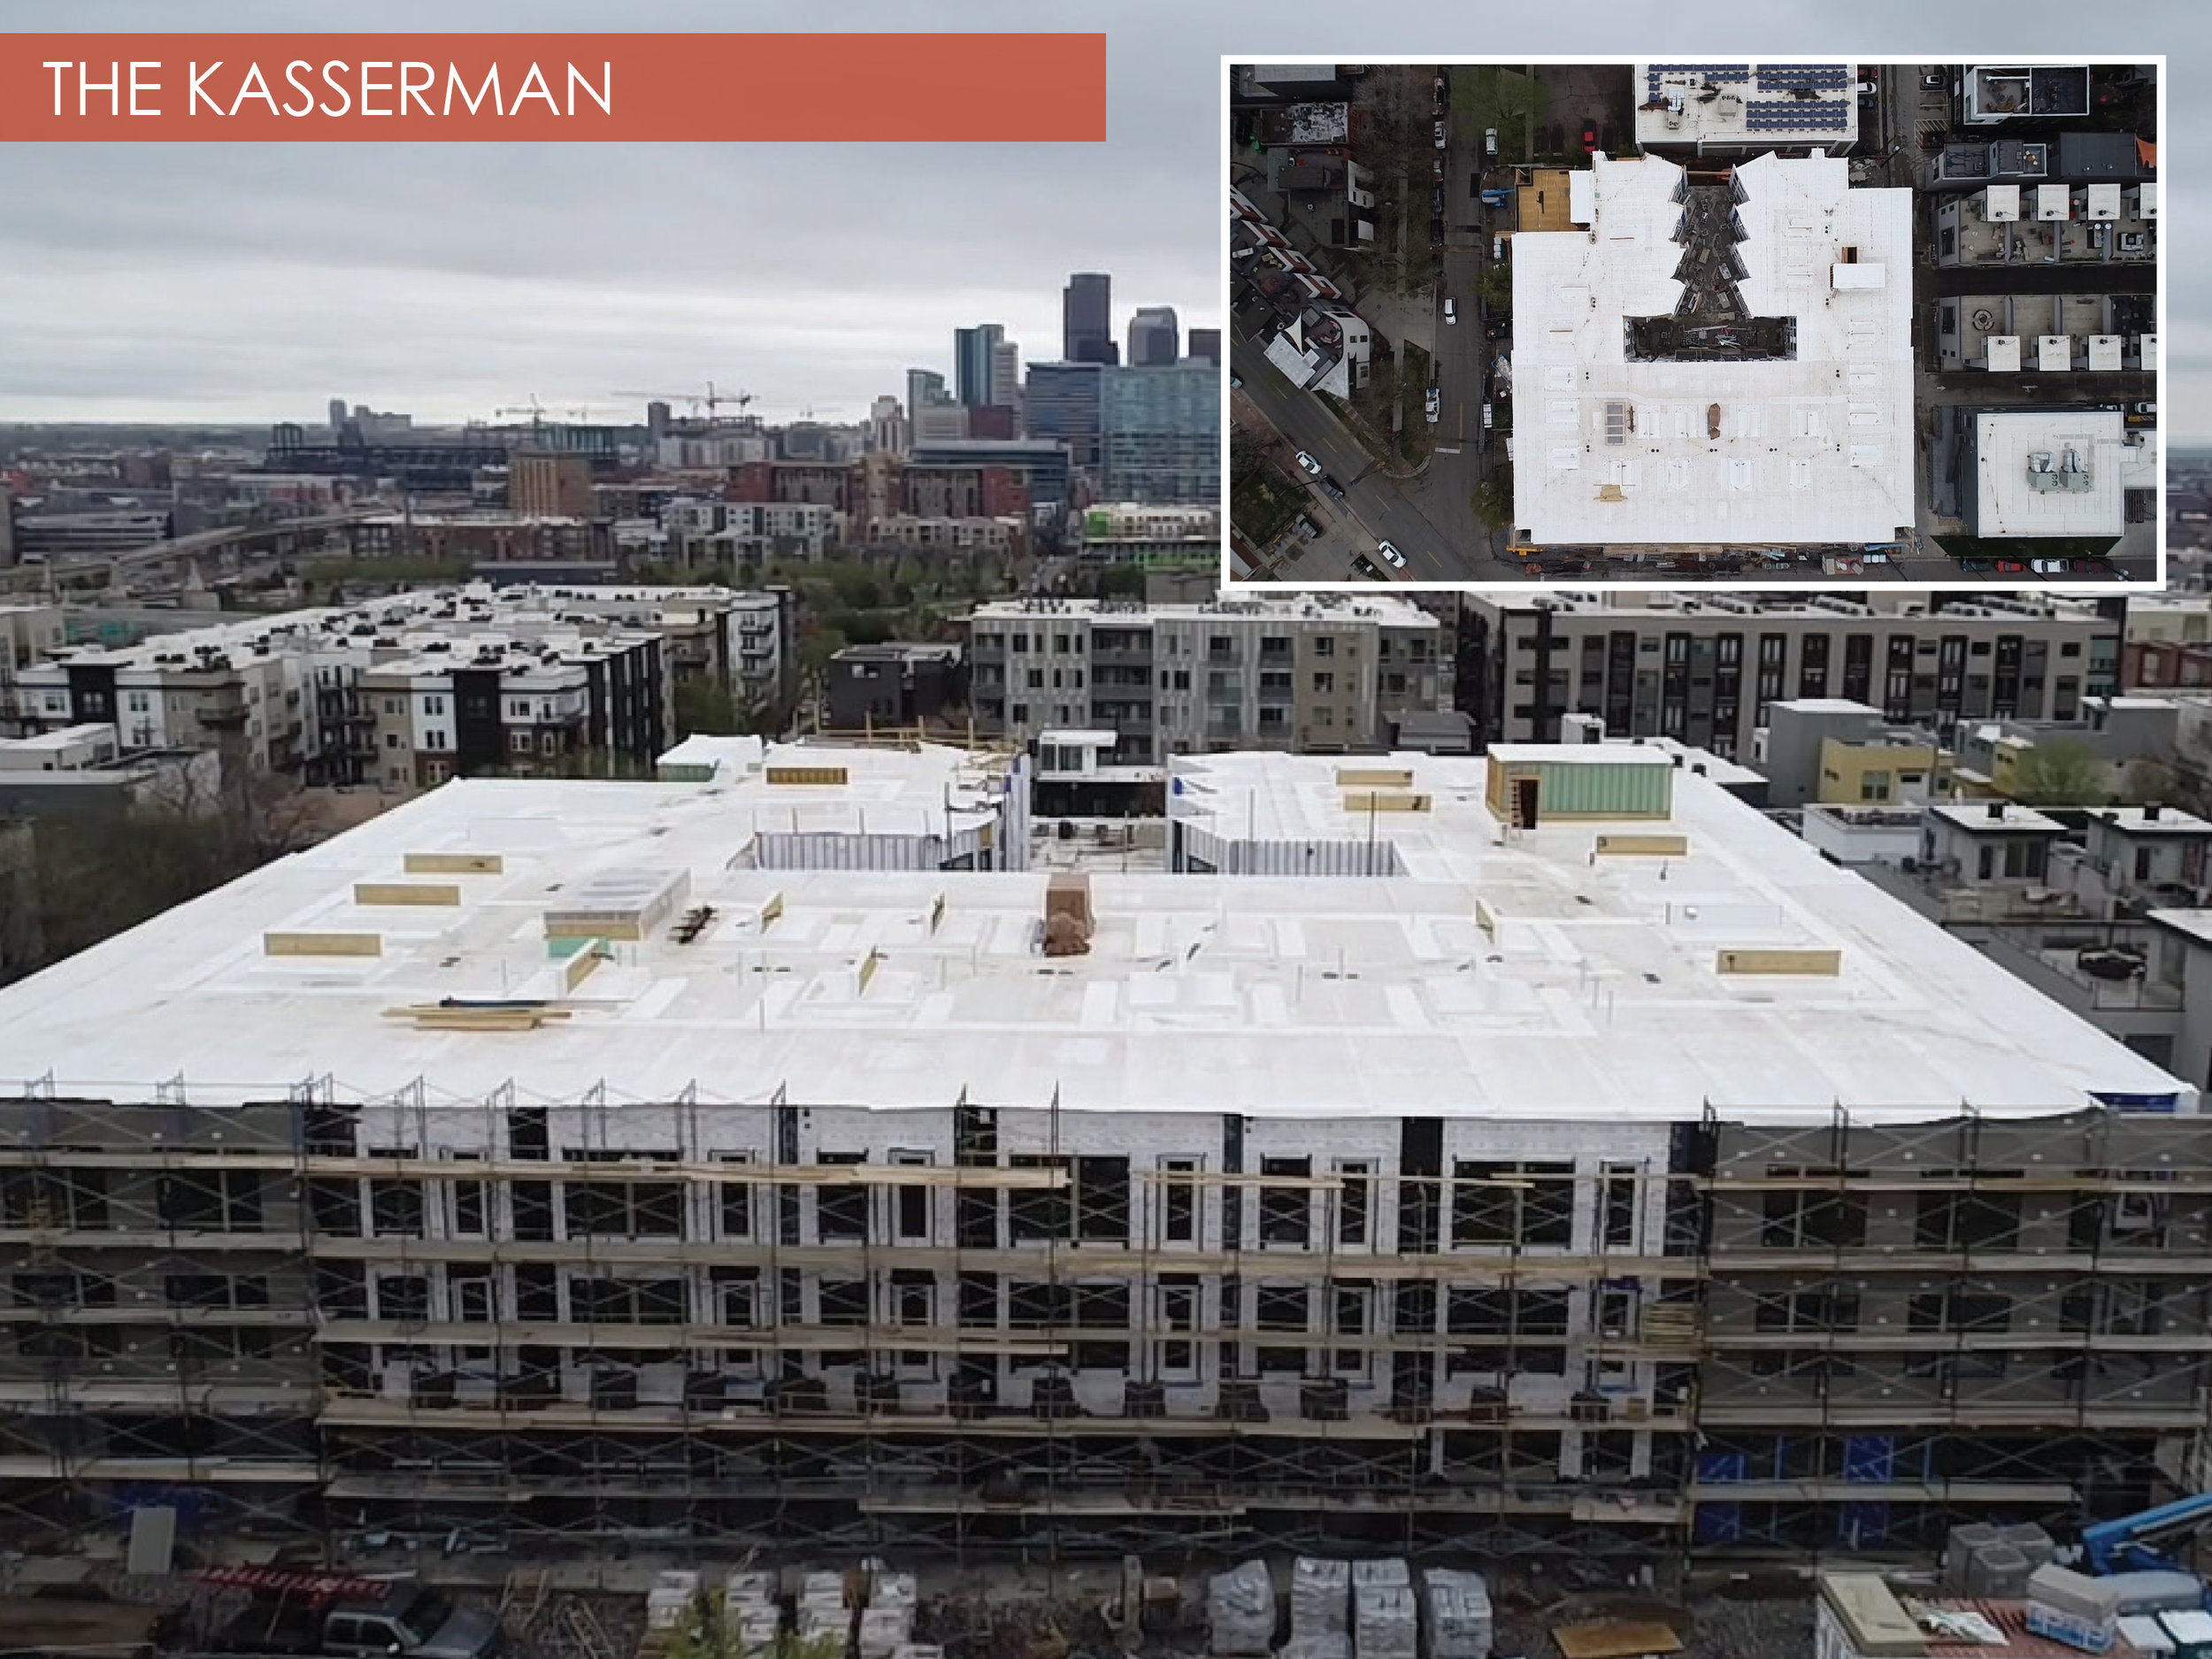 The Kasserman, Highlands, Denver, Colorado   The 3-story Kasserman is underway, finishing up exterior work in the coming months.  Built on the angled grade characteristic of the Highlands neighborhood, the building actually features 3 stories of residential and 2 of resident parking below.  The Kasserman is projected to open September 2018.